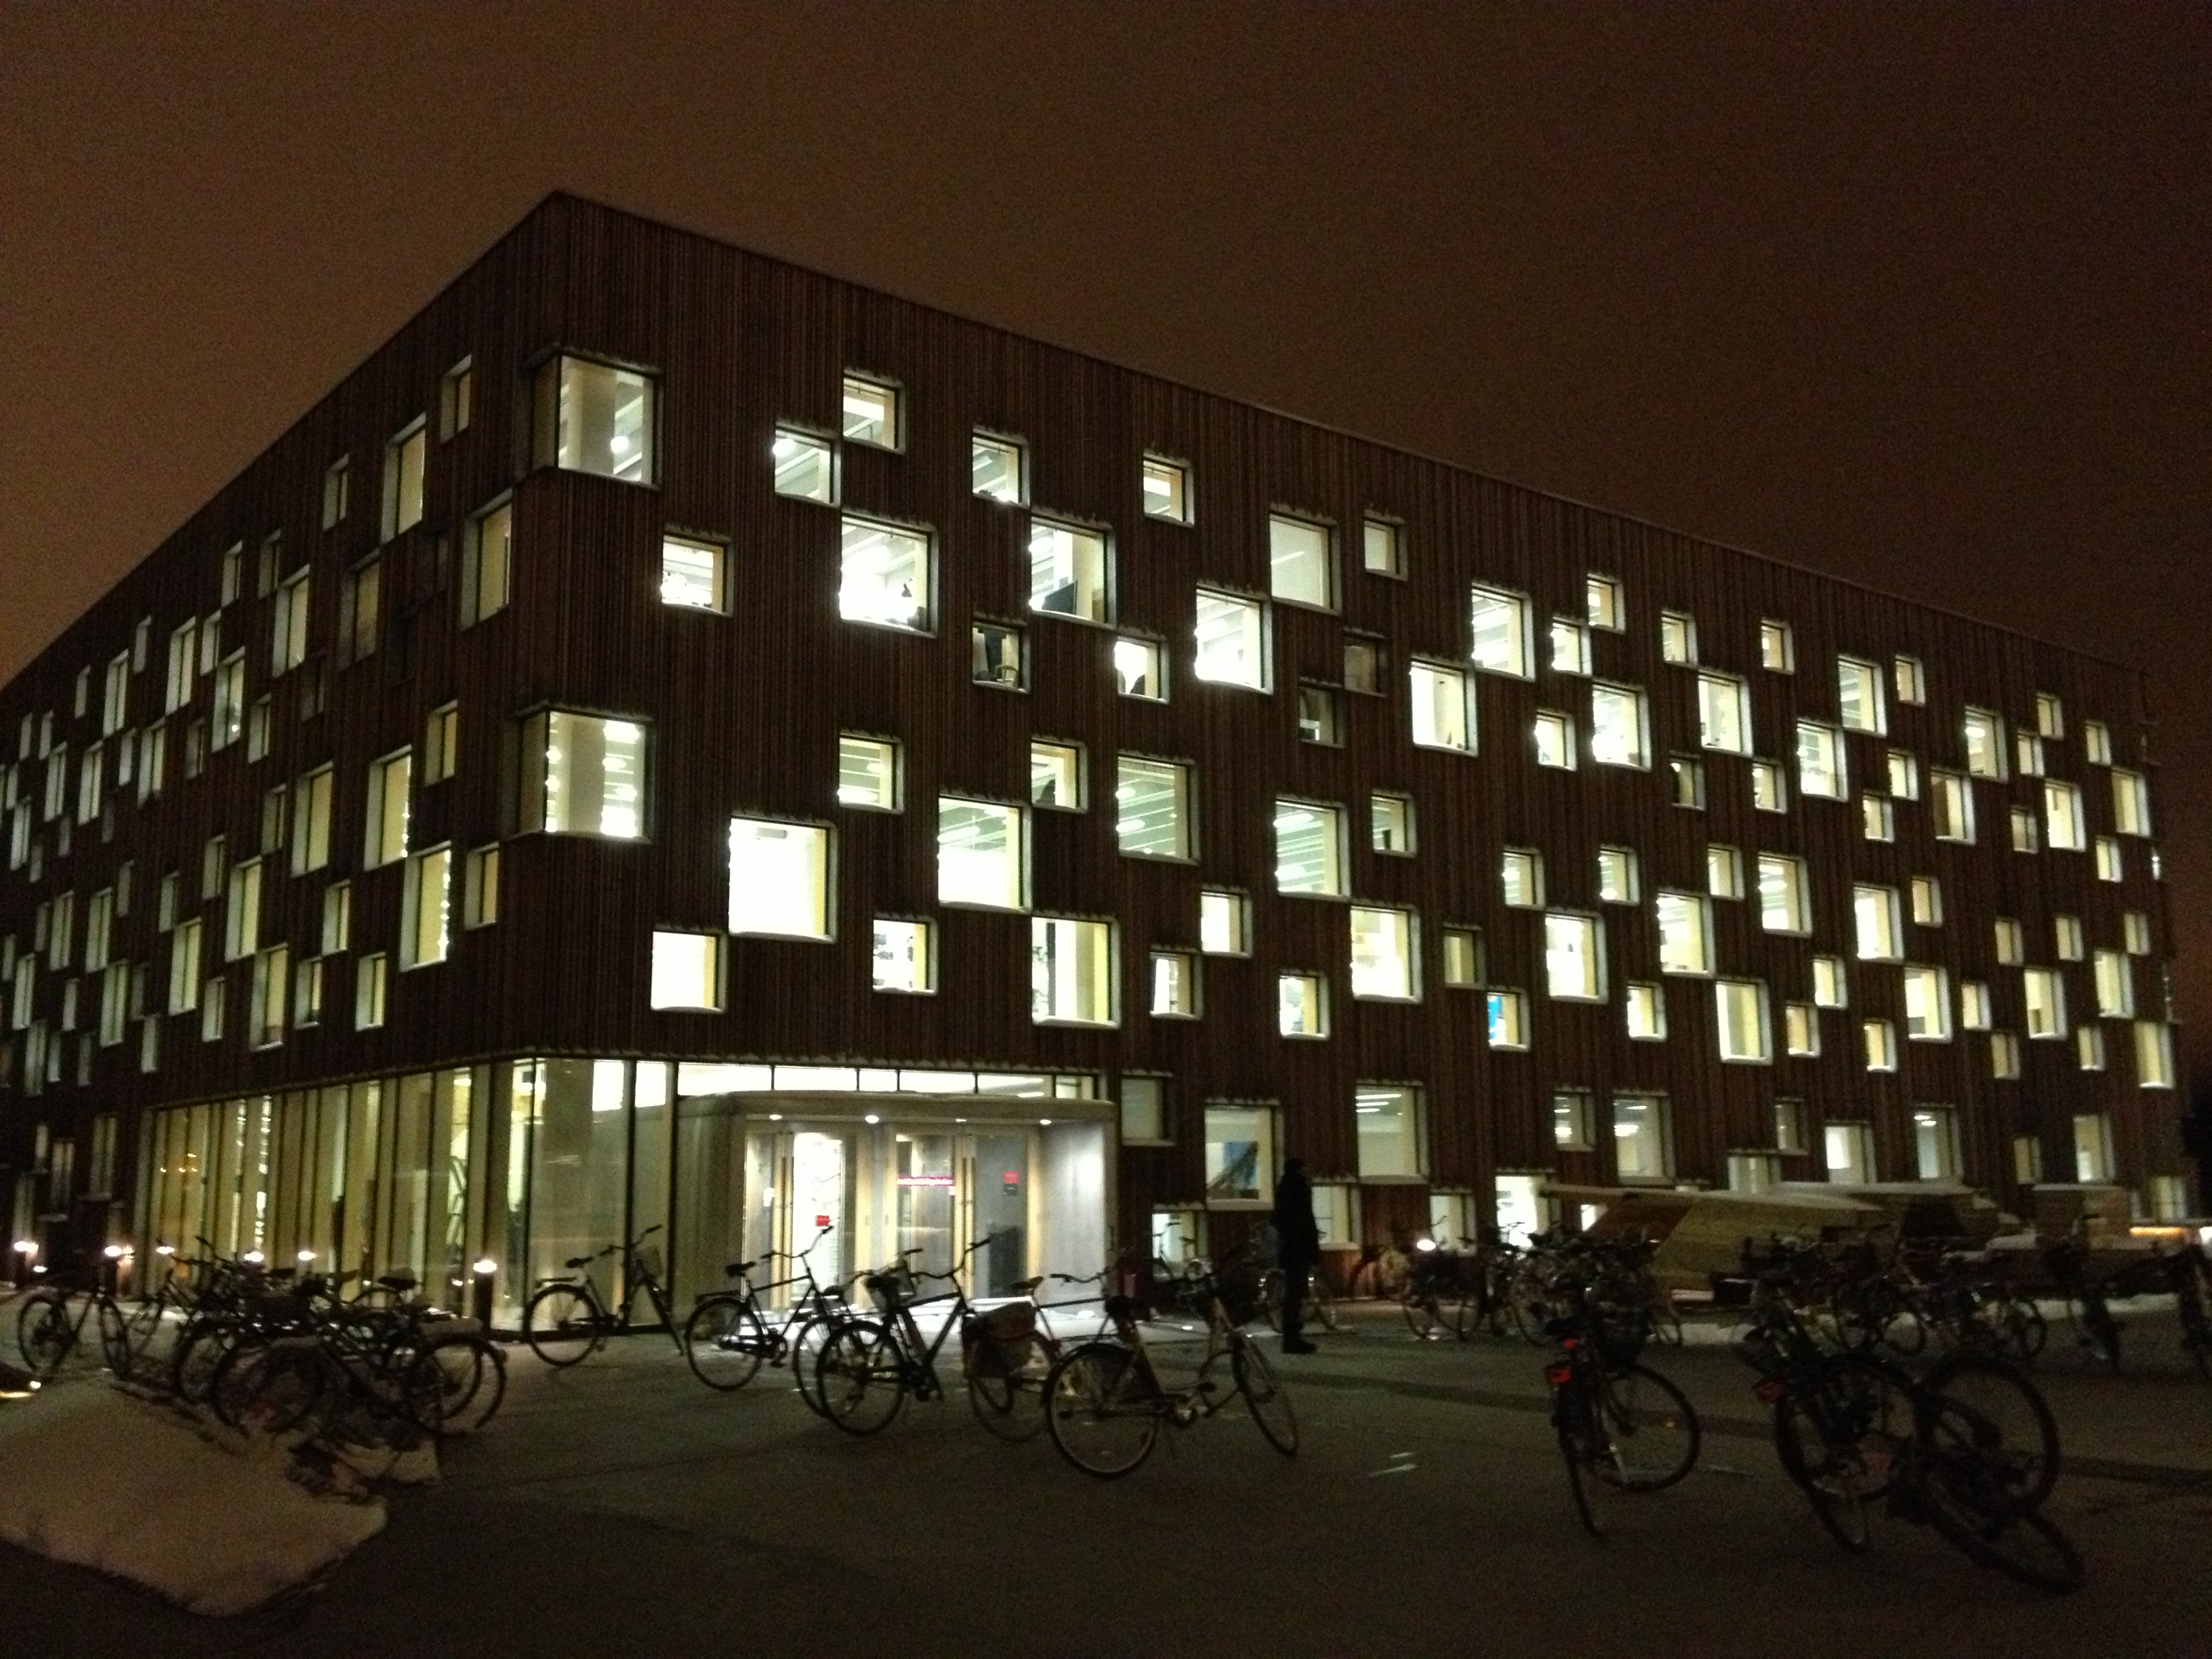 Umea's Arts Campus